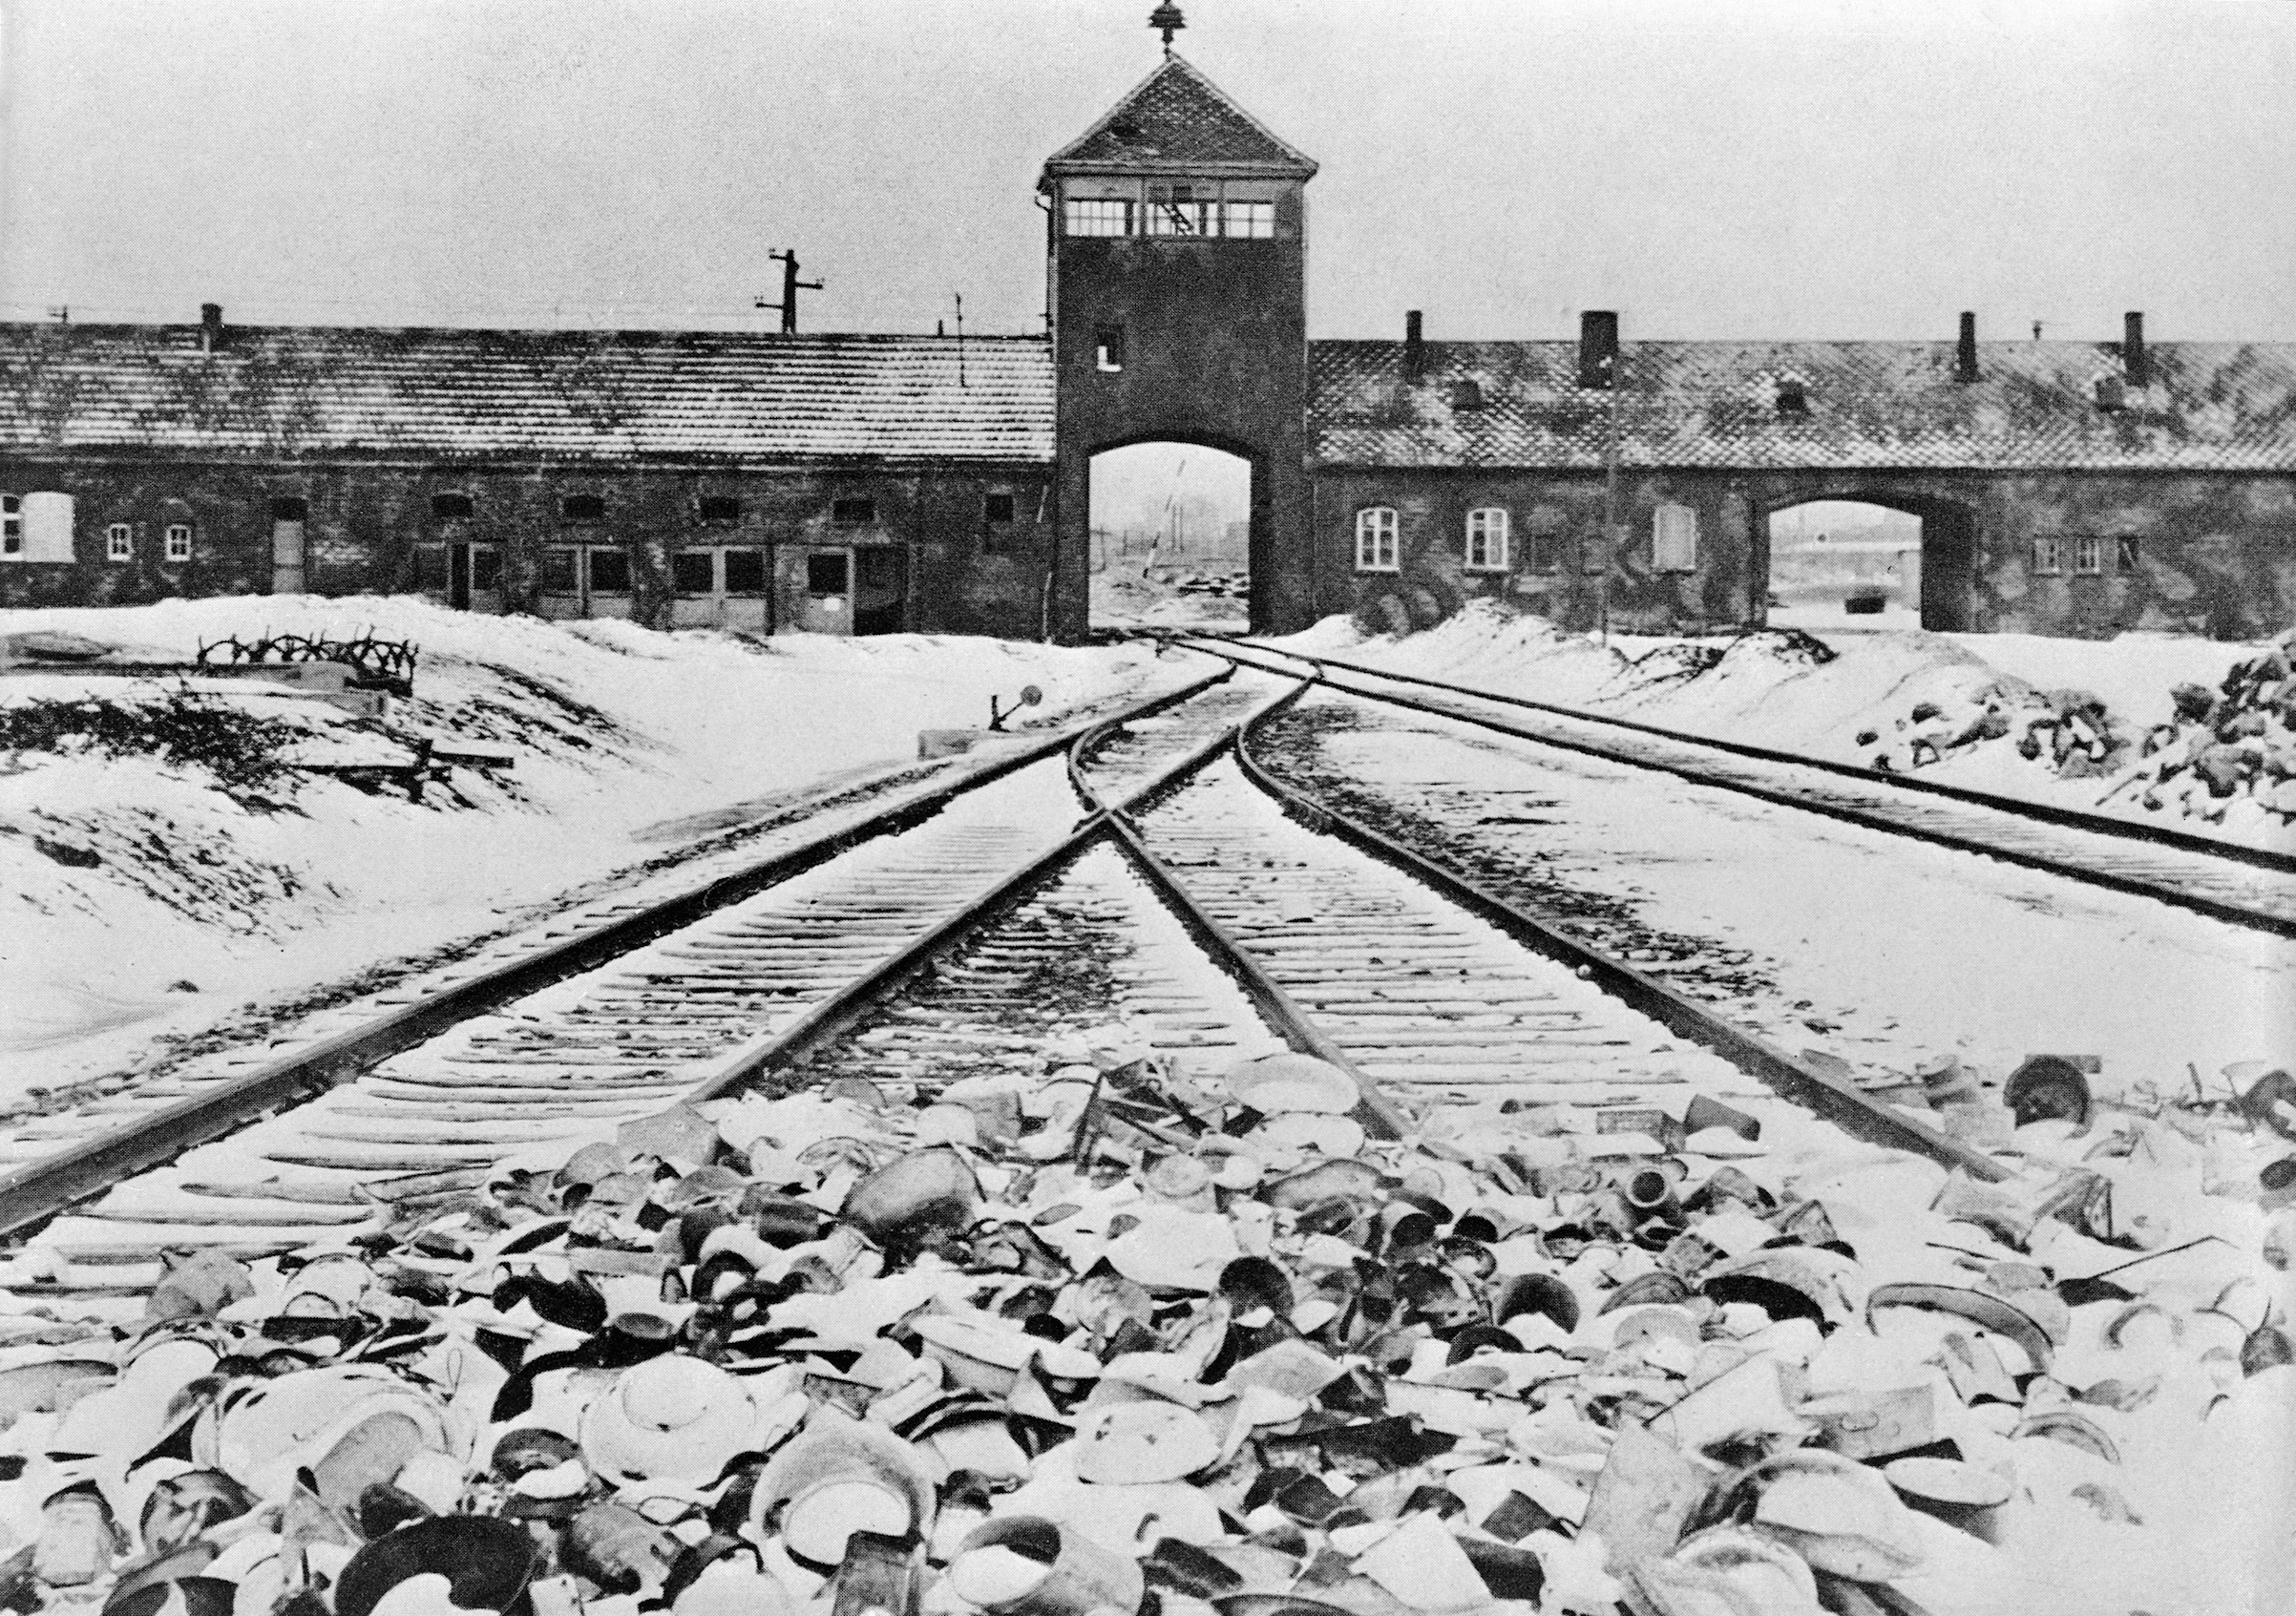 Entrance to the German concentration camp of Auschwitz-Birkenau in Poland. Undated photograph.